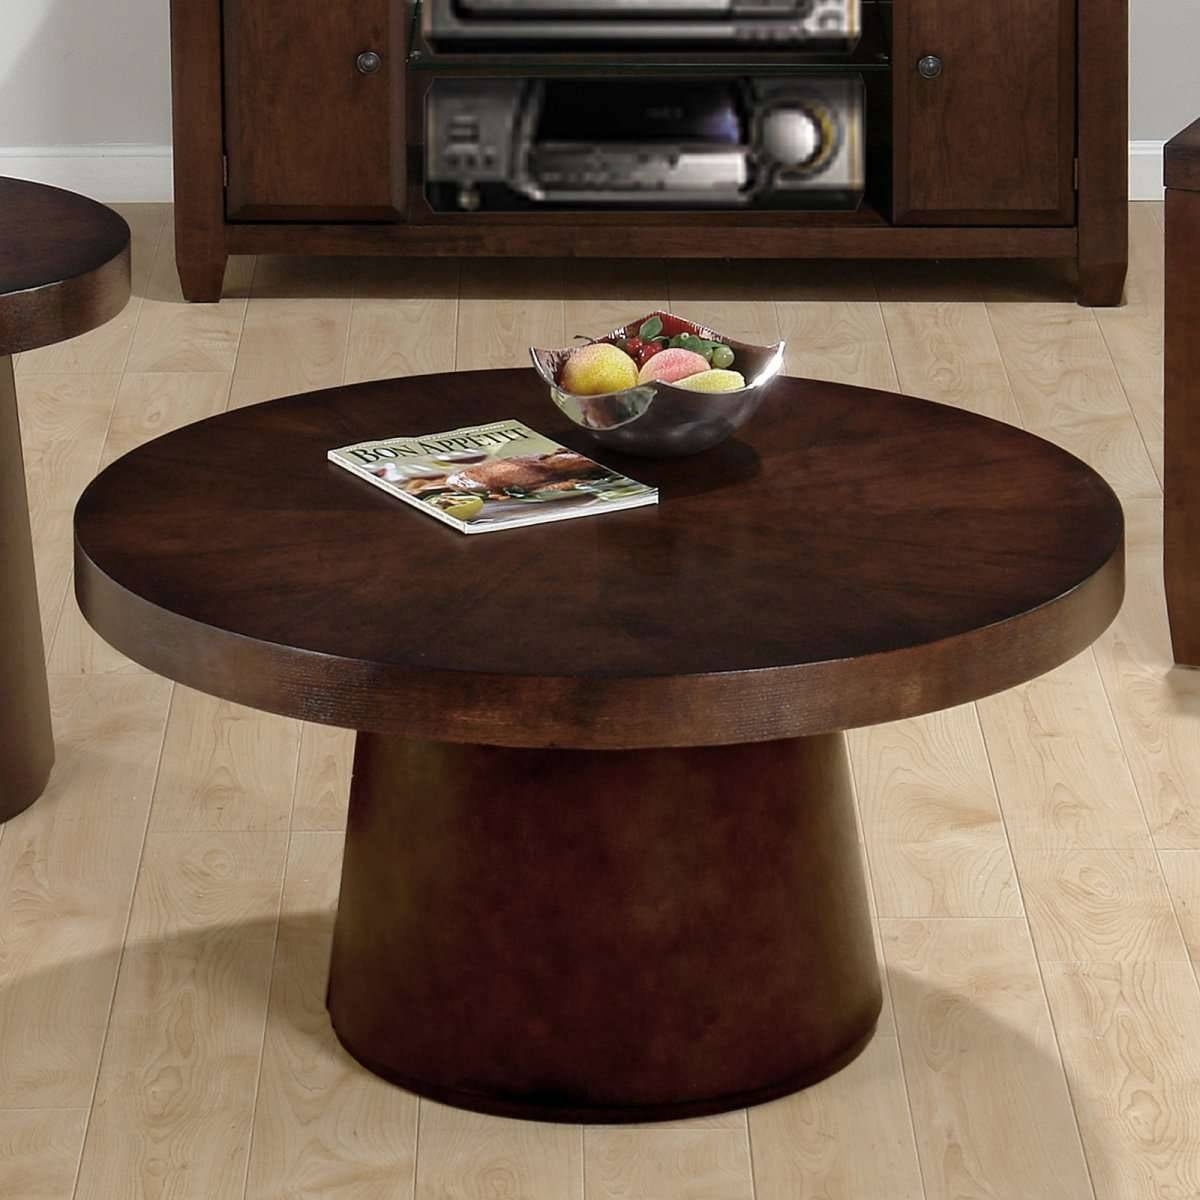 Furniture Exciting Small Round Coffee Tables Design Ideas: Dark intended for Round Coffee Tables (Image 11 of 30)